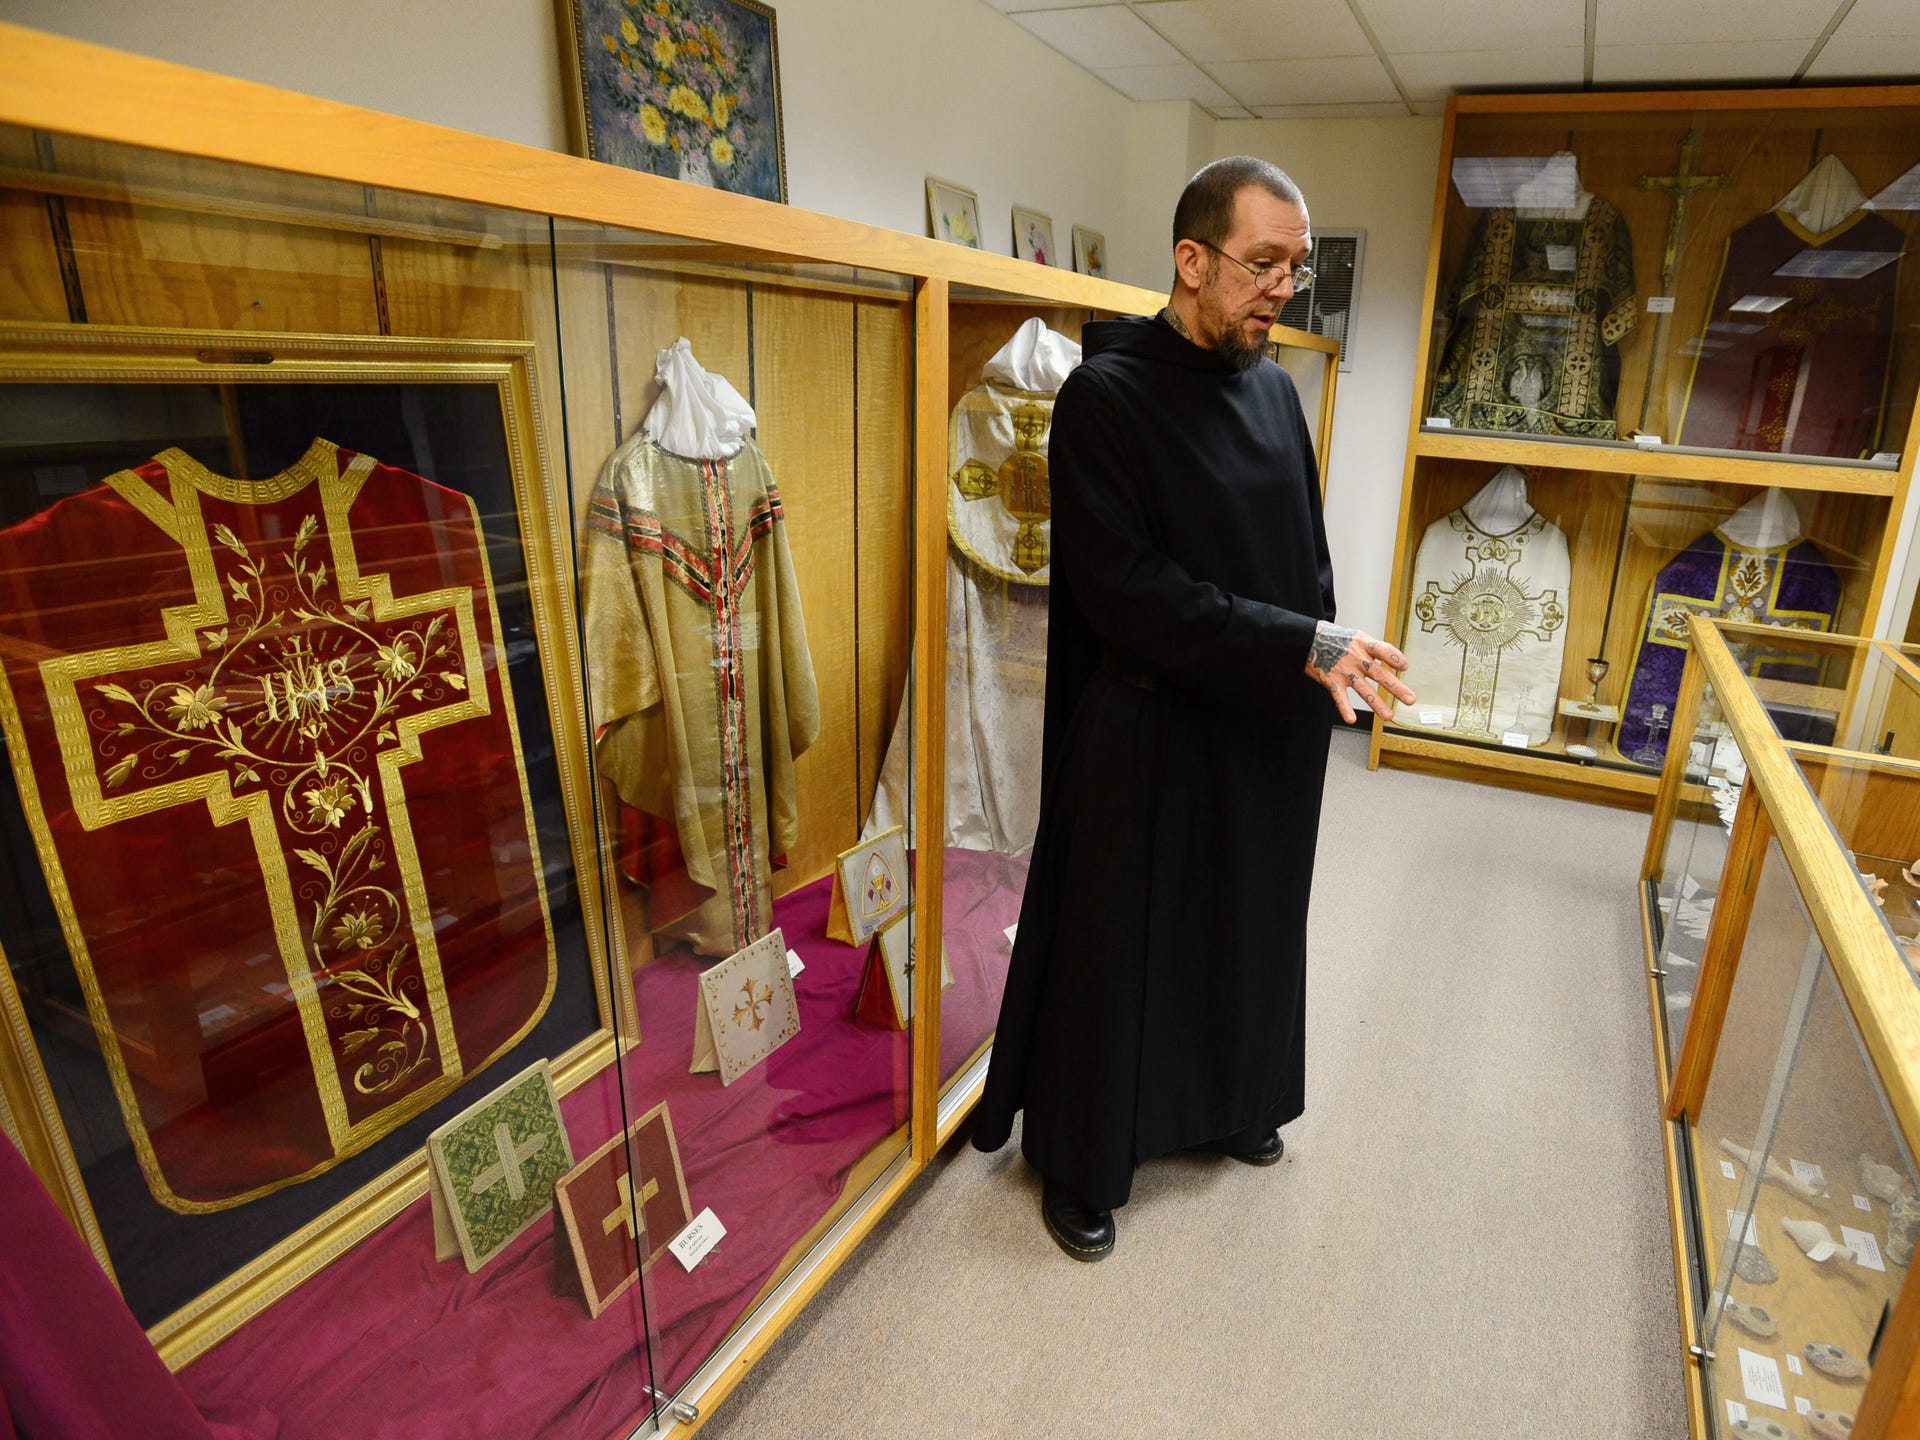 Brother Andre Love, a Benedictine monk, offers a tour